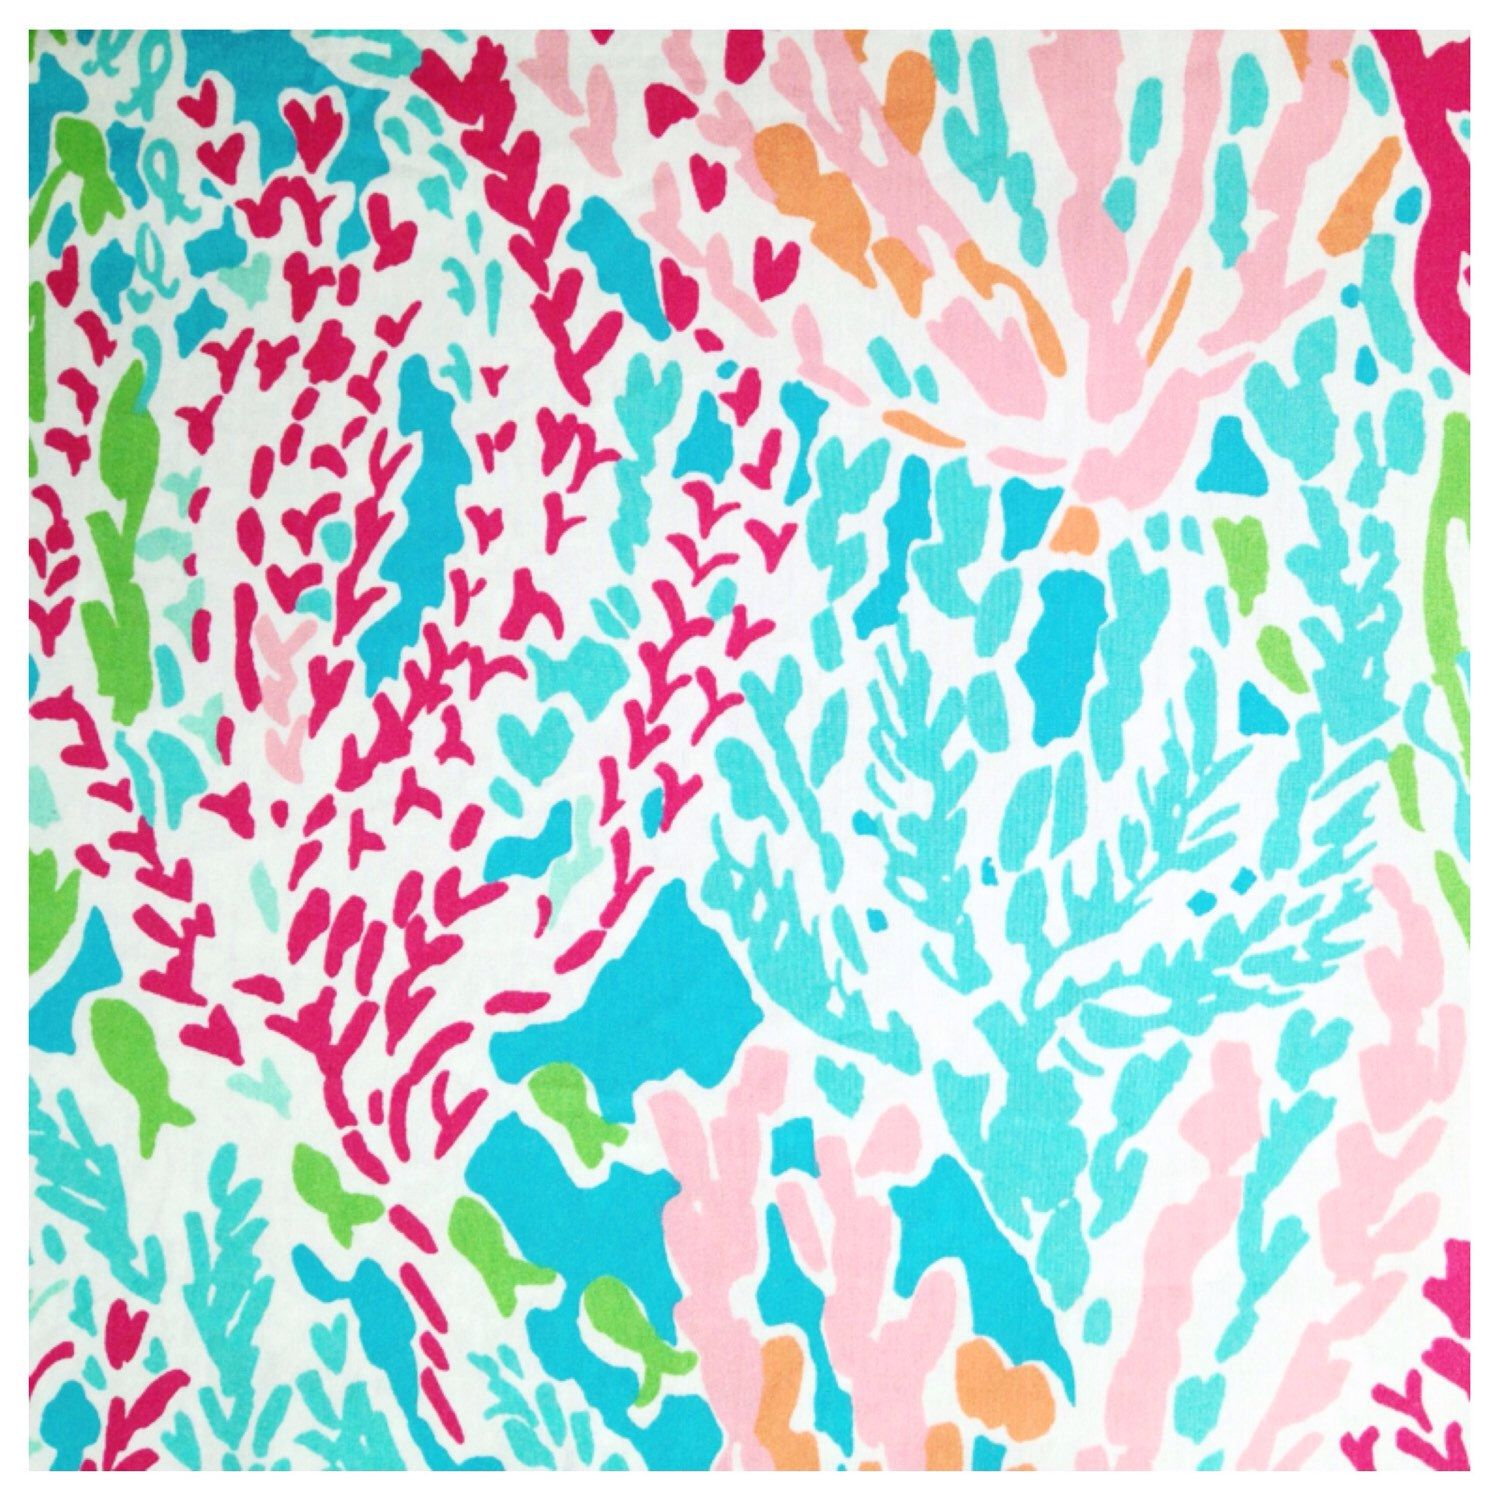 1b23a6c569fa91 Pin by Meg on Lilly Pulitzer | Lilly pulitzer fabric, Lilly pulitzer ...